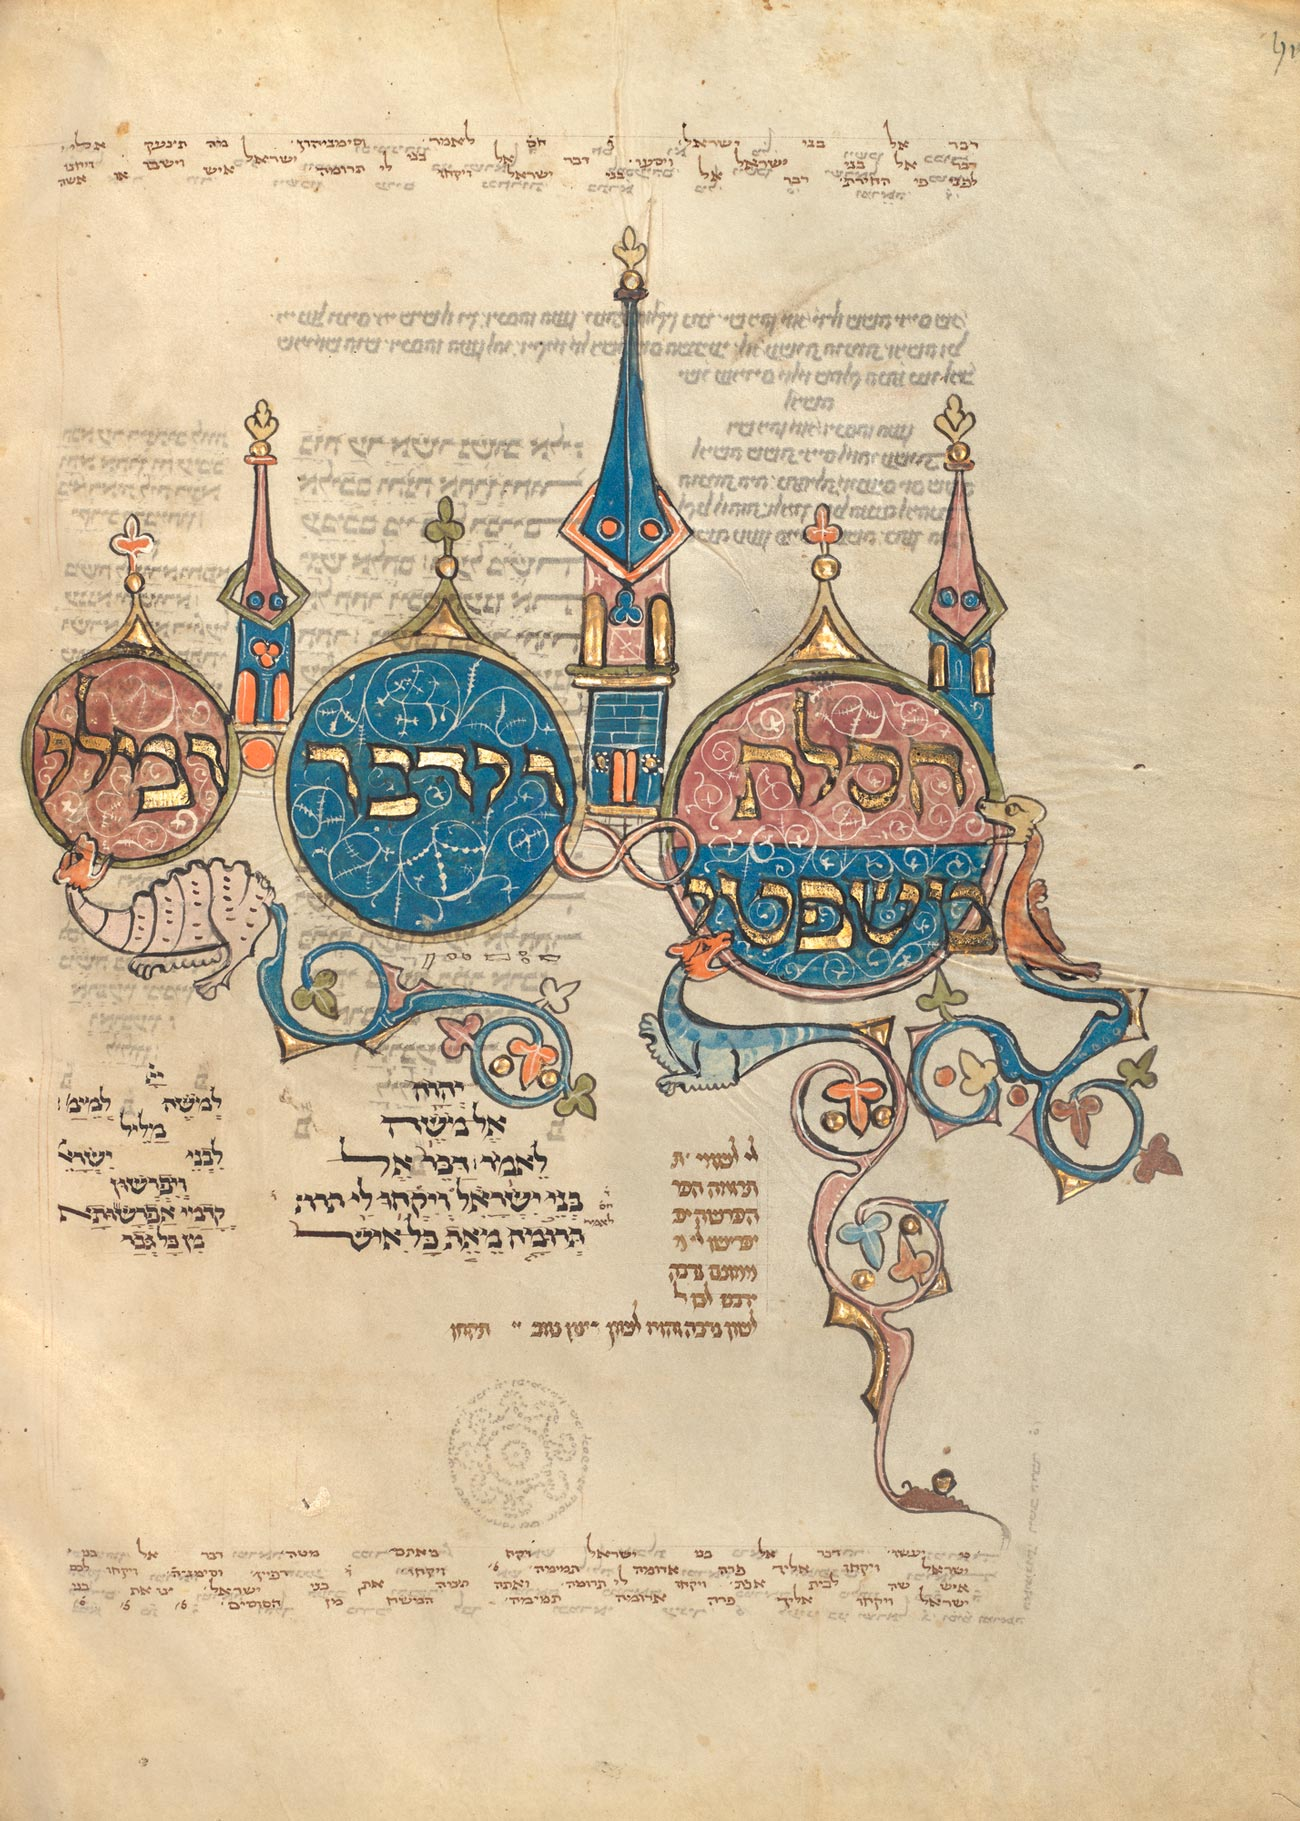 An illuminated manuscript with sparse Hebrew text in different colors and sizes, illustrations of large circles and towers and animals.